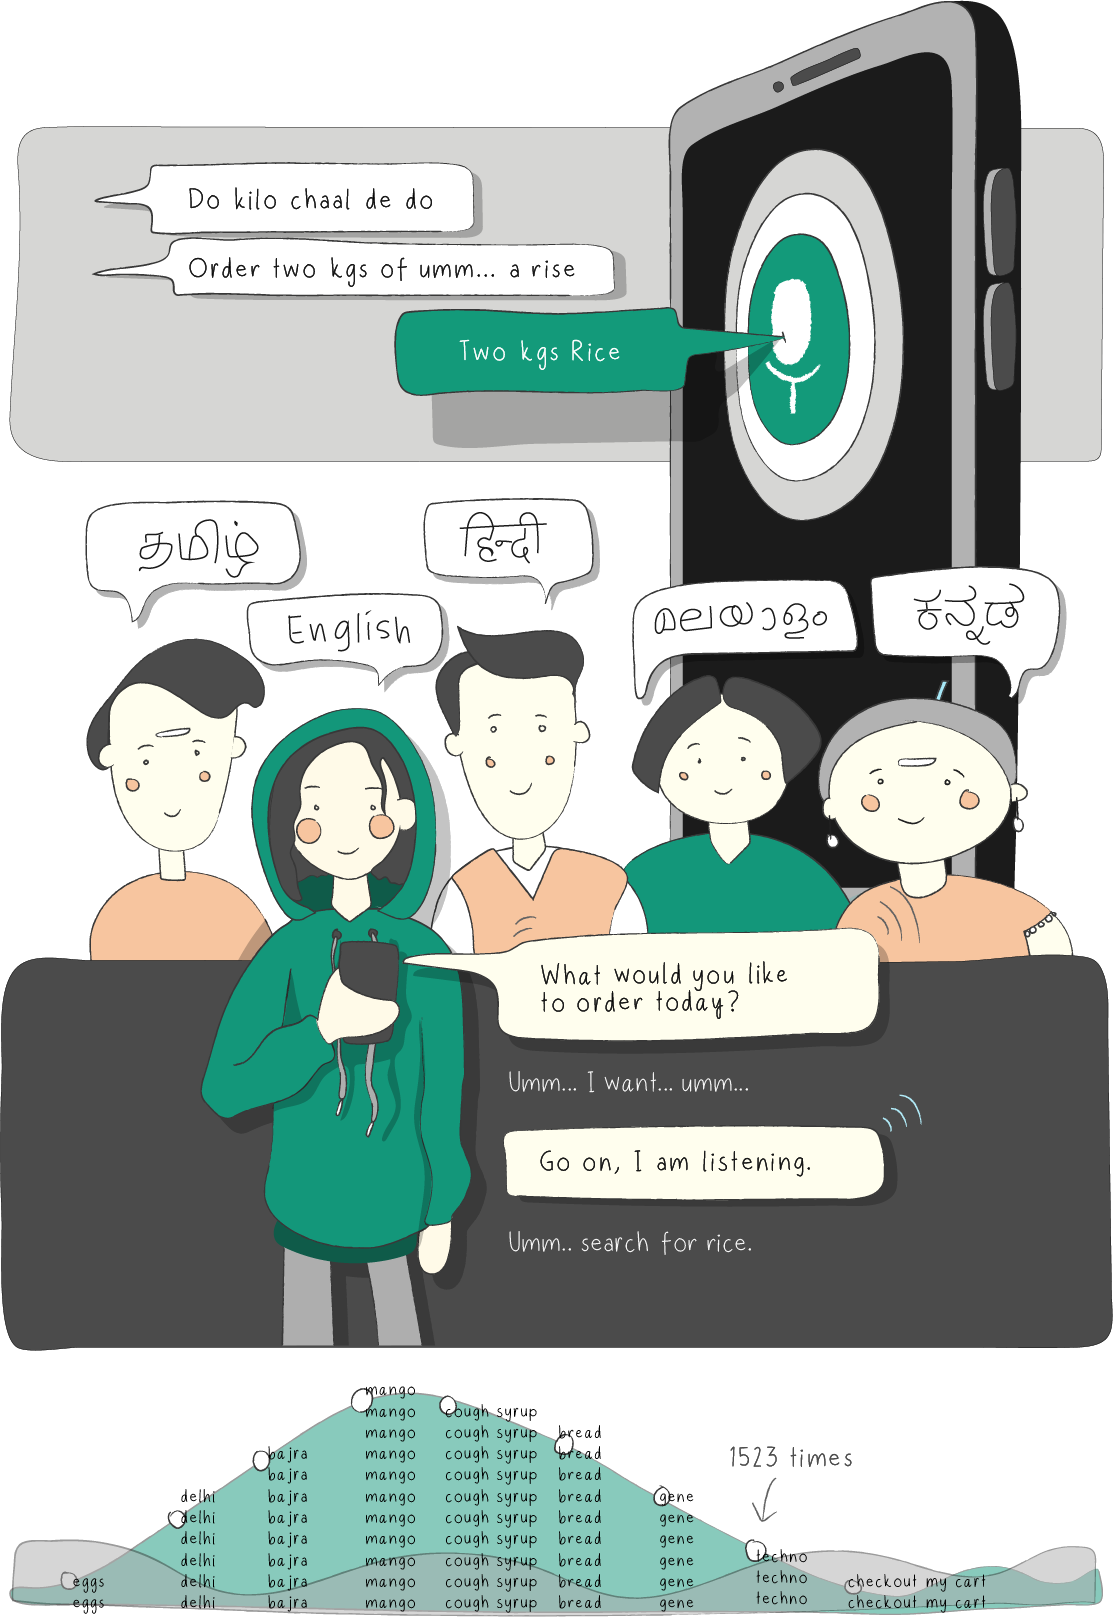 Slang voice assistants are highly accurate, multilingual and provide great user experience.